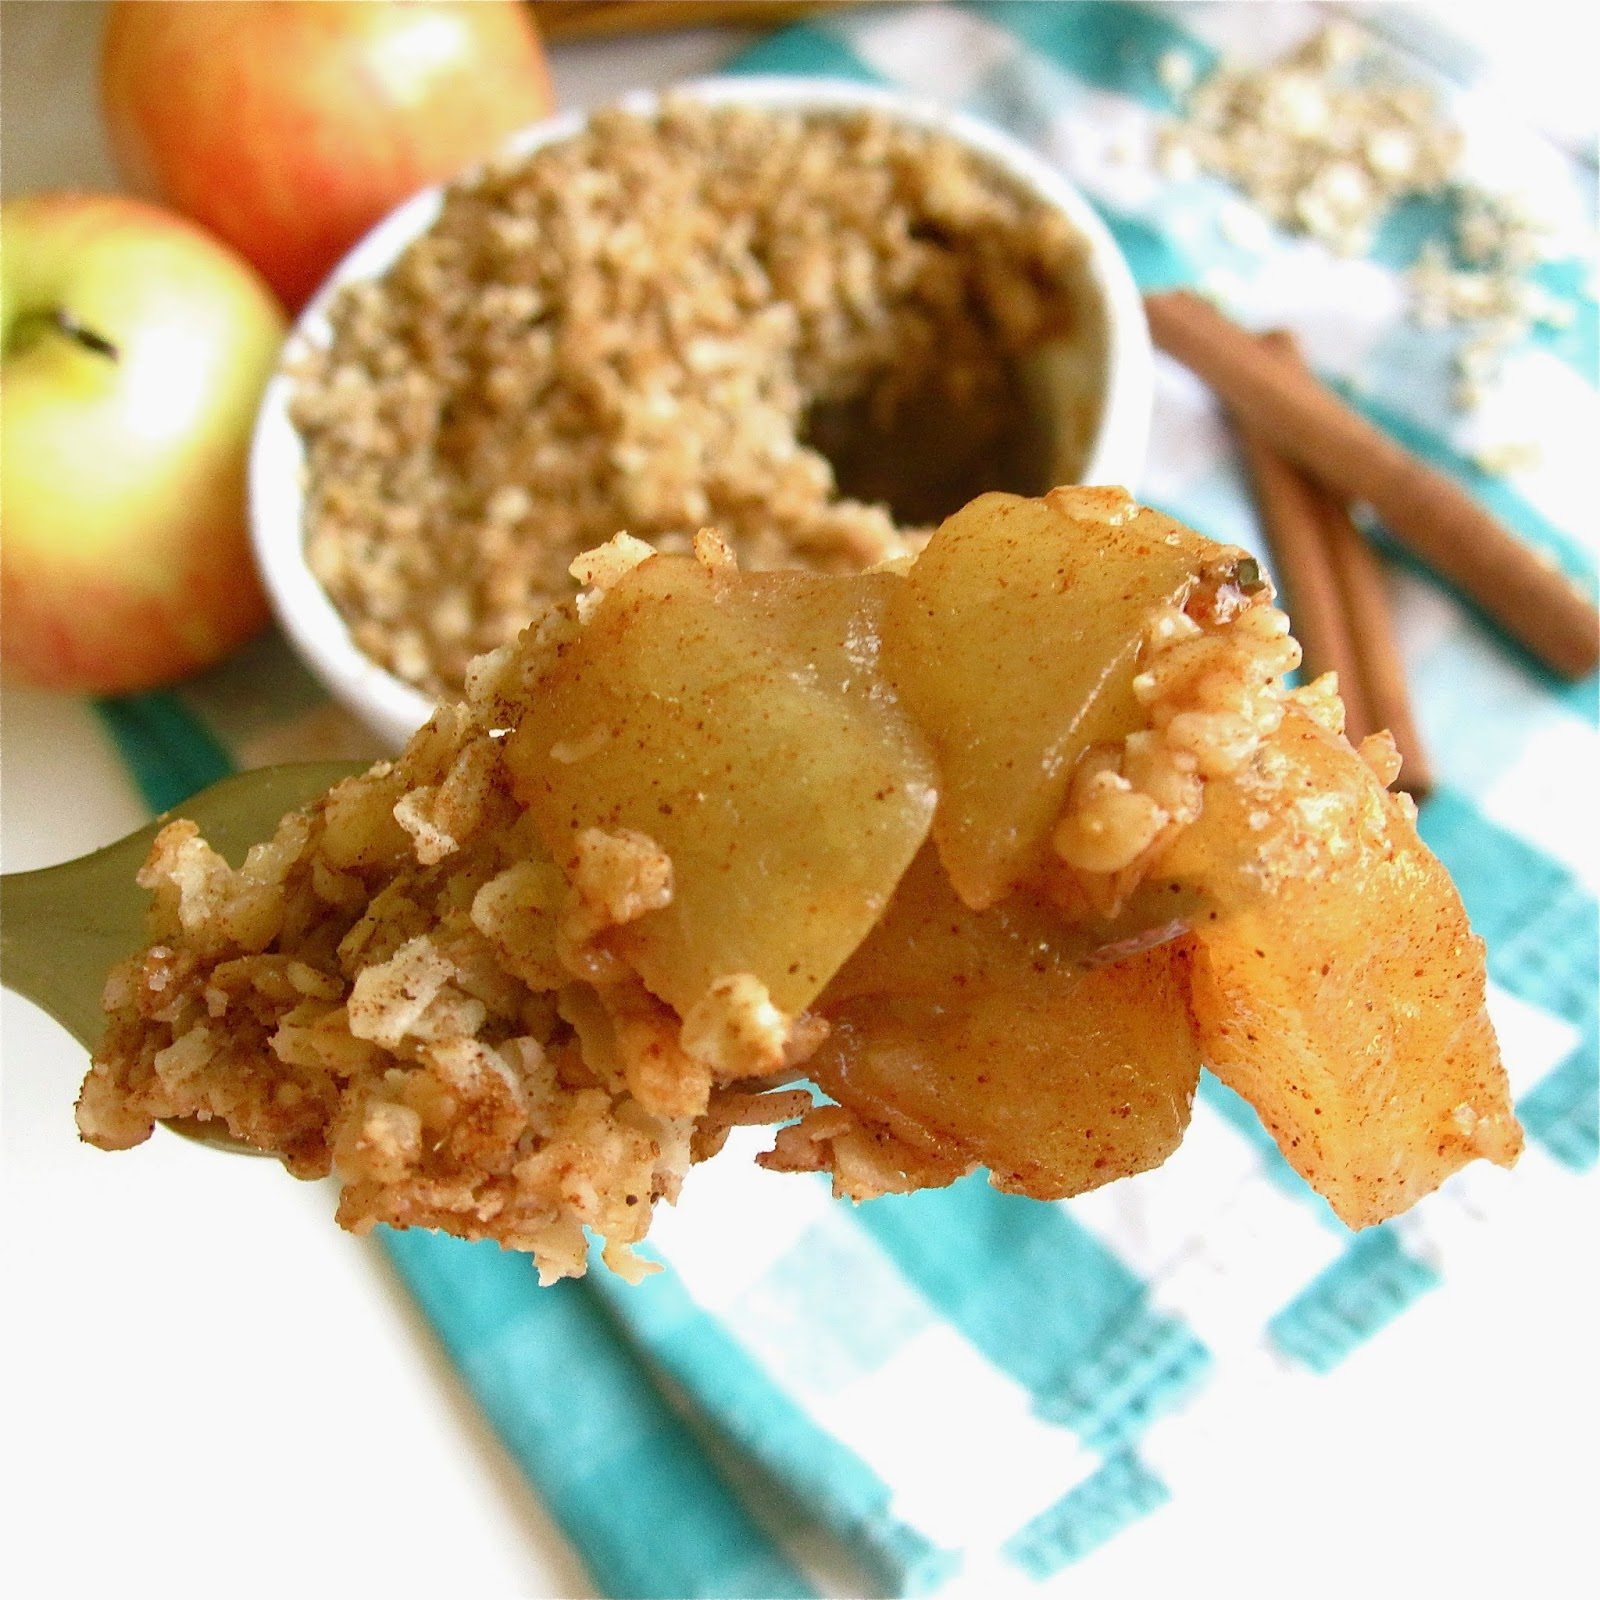 http://blog.dollhousebakeshoppe.com/2014/09/healthy-5-minute-single-serving-apple.html